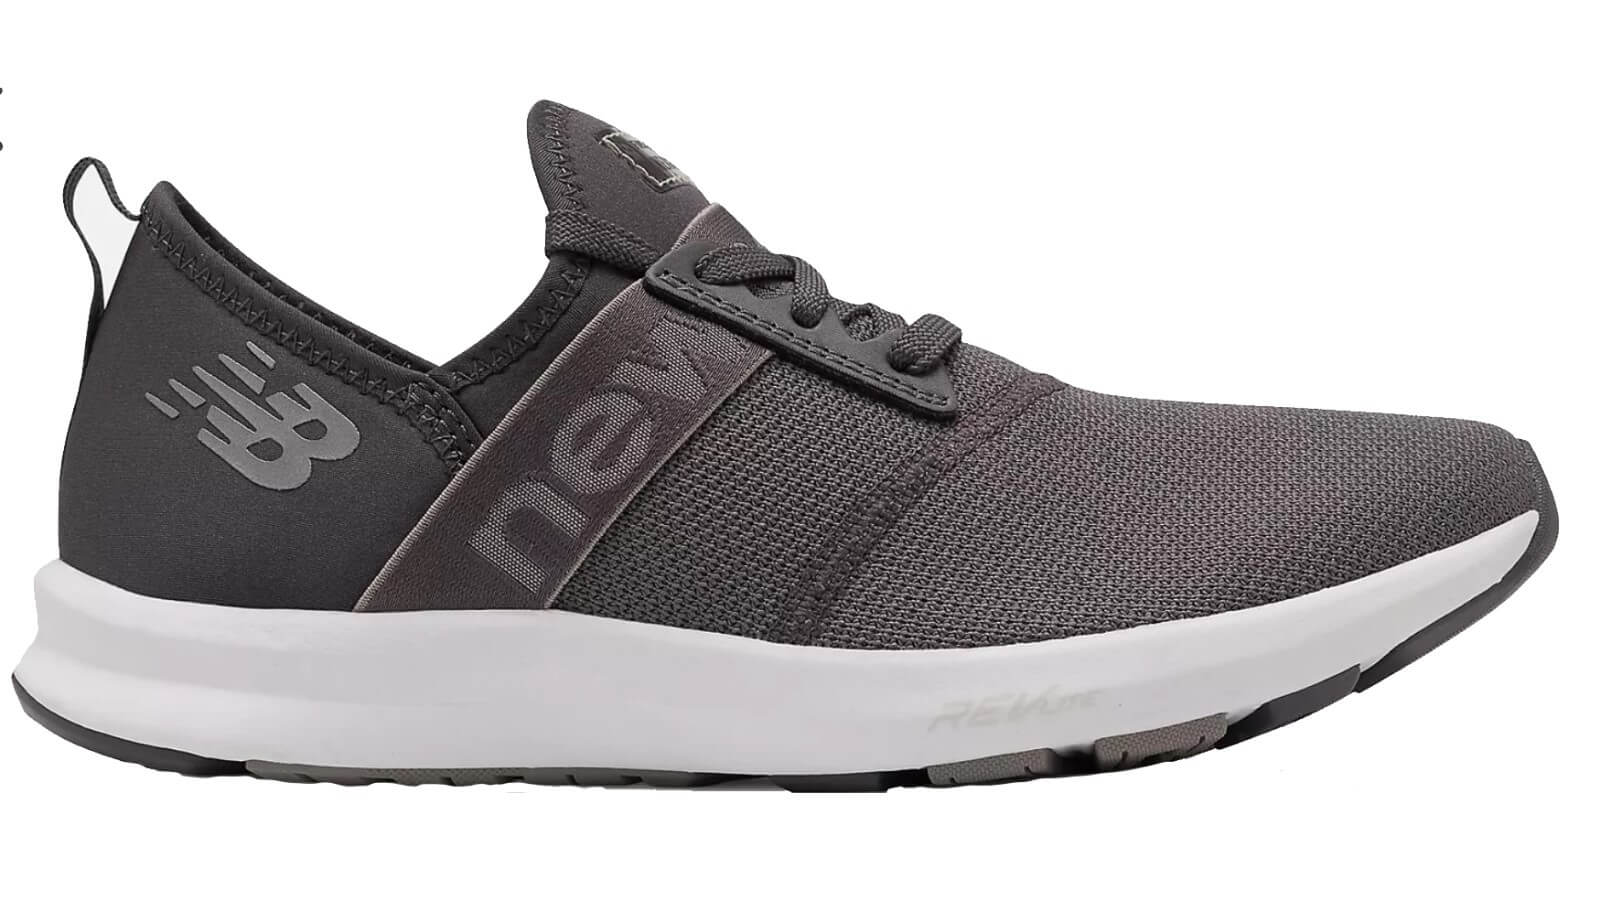 New Balance FuelCore Nergize gym shoe profile view